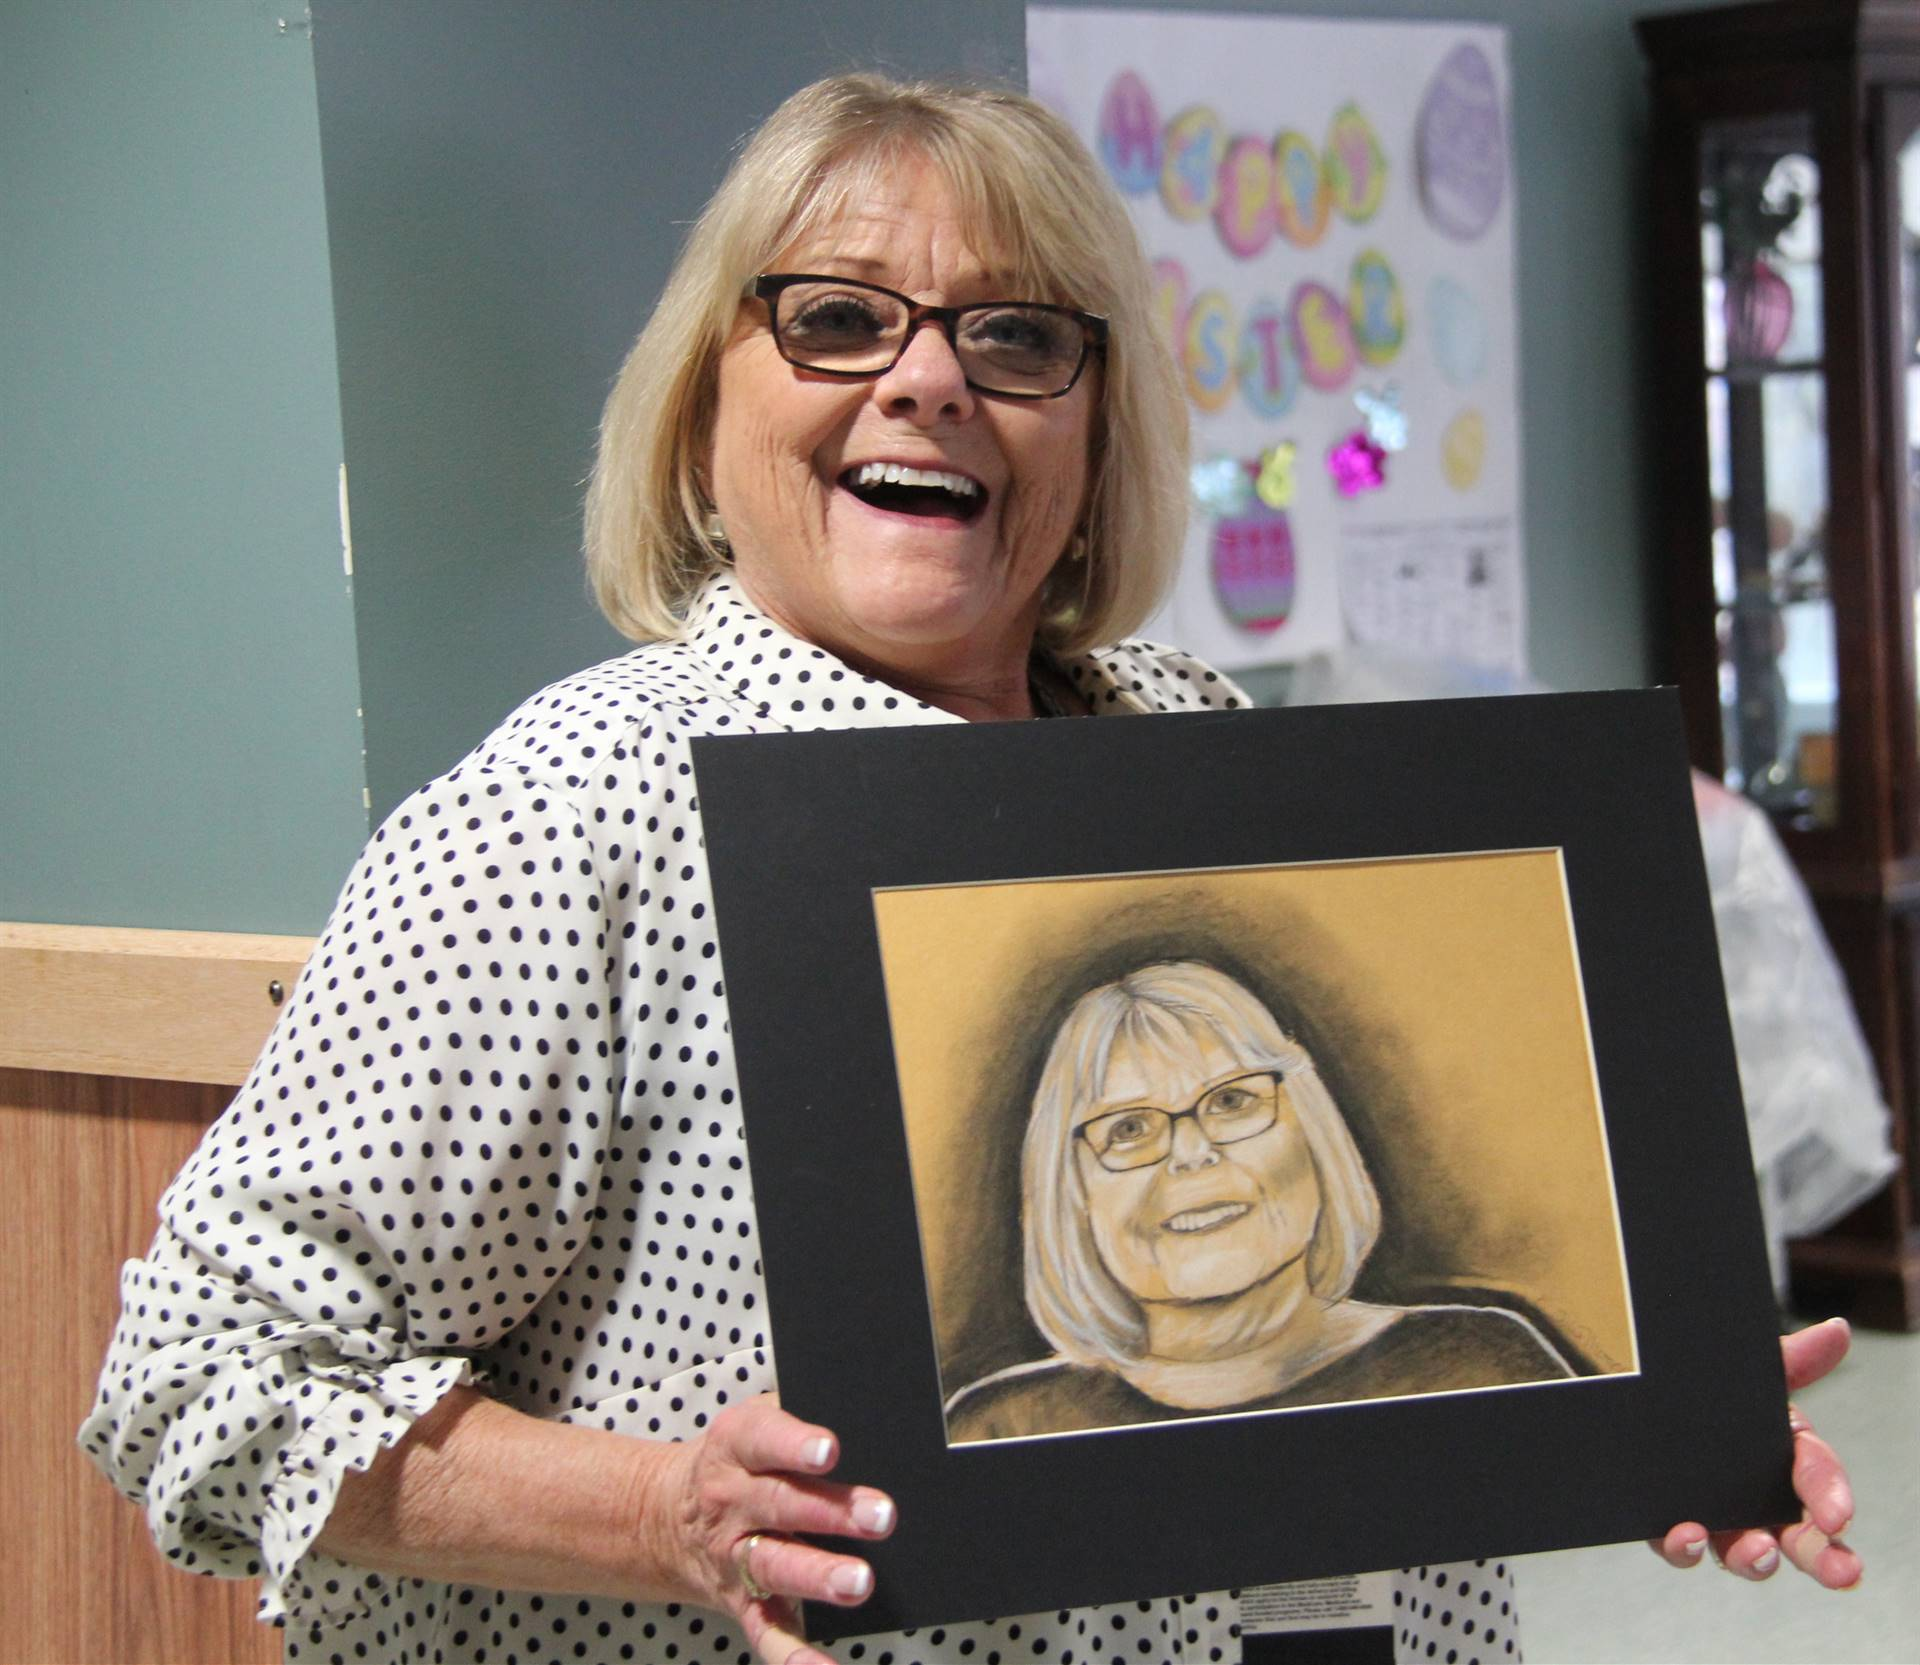 employee smiling with drawing of herself